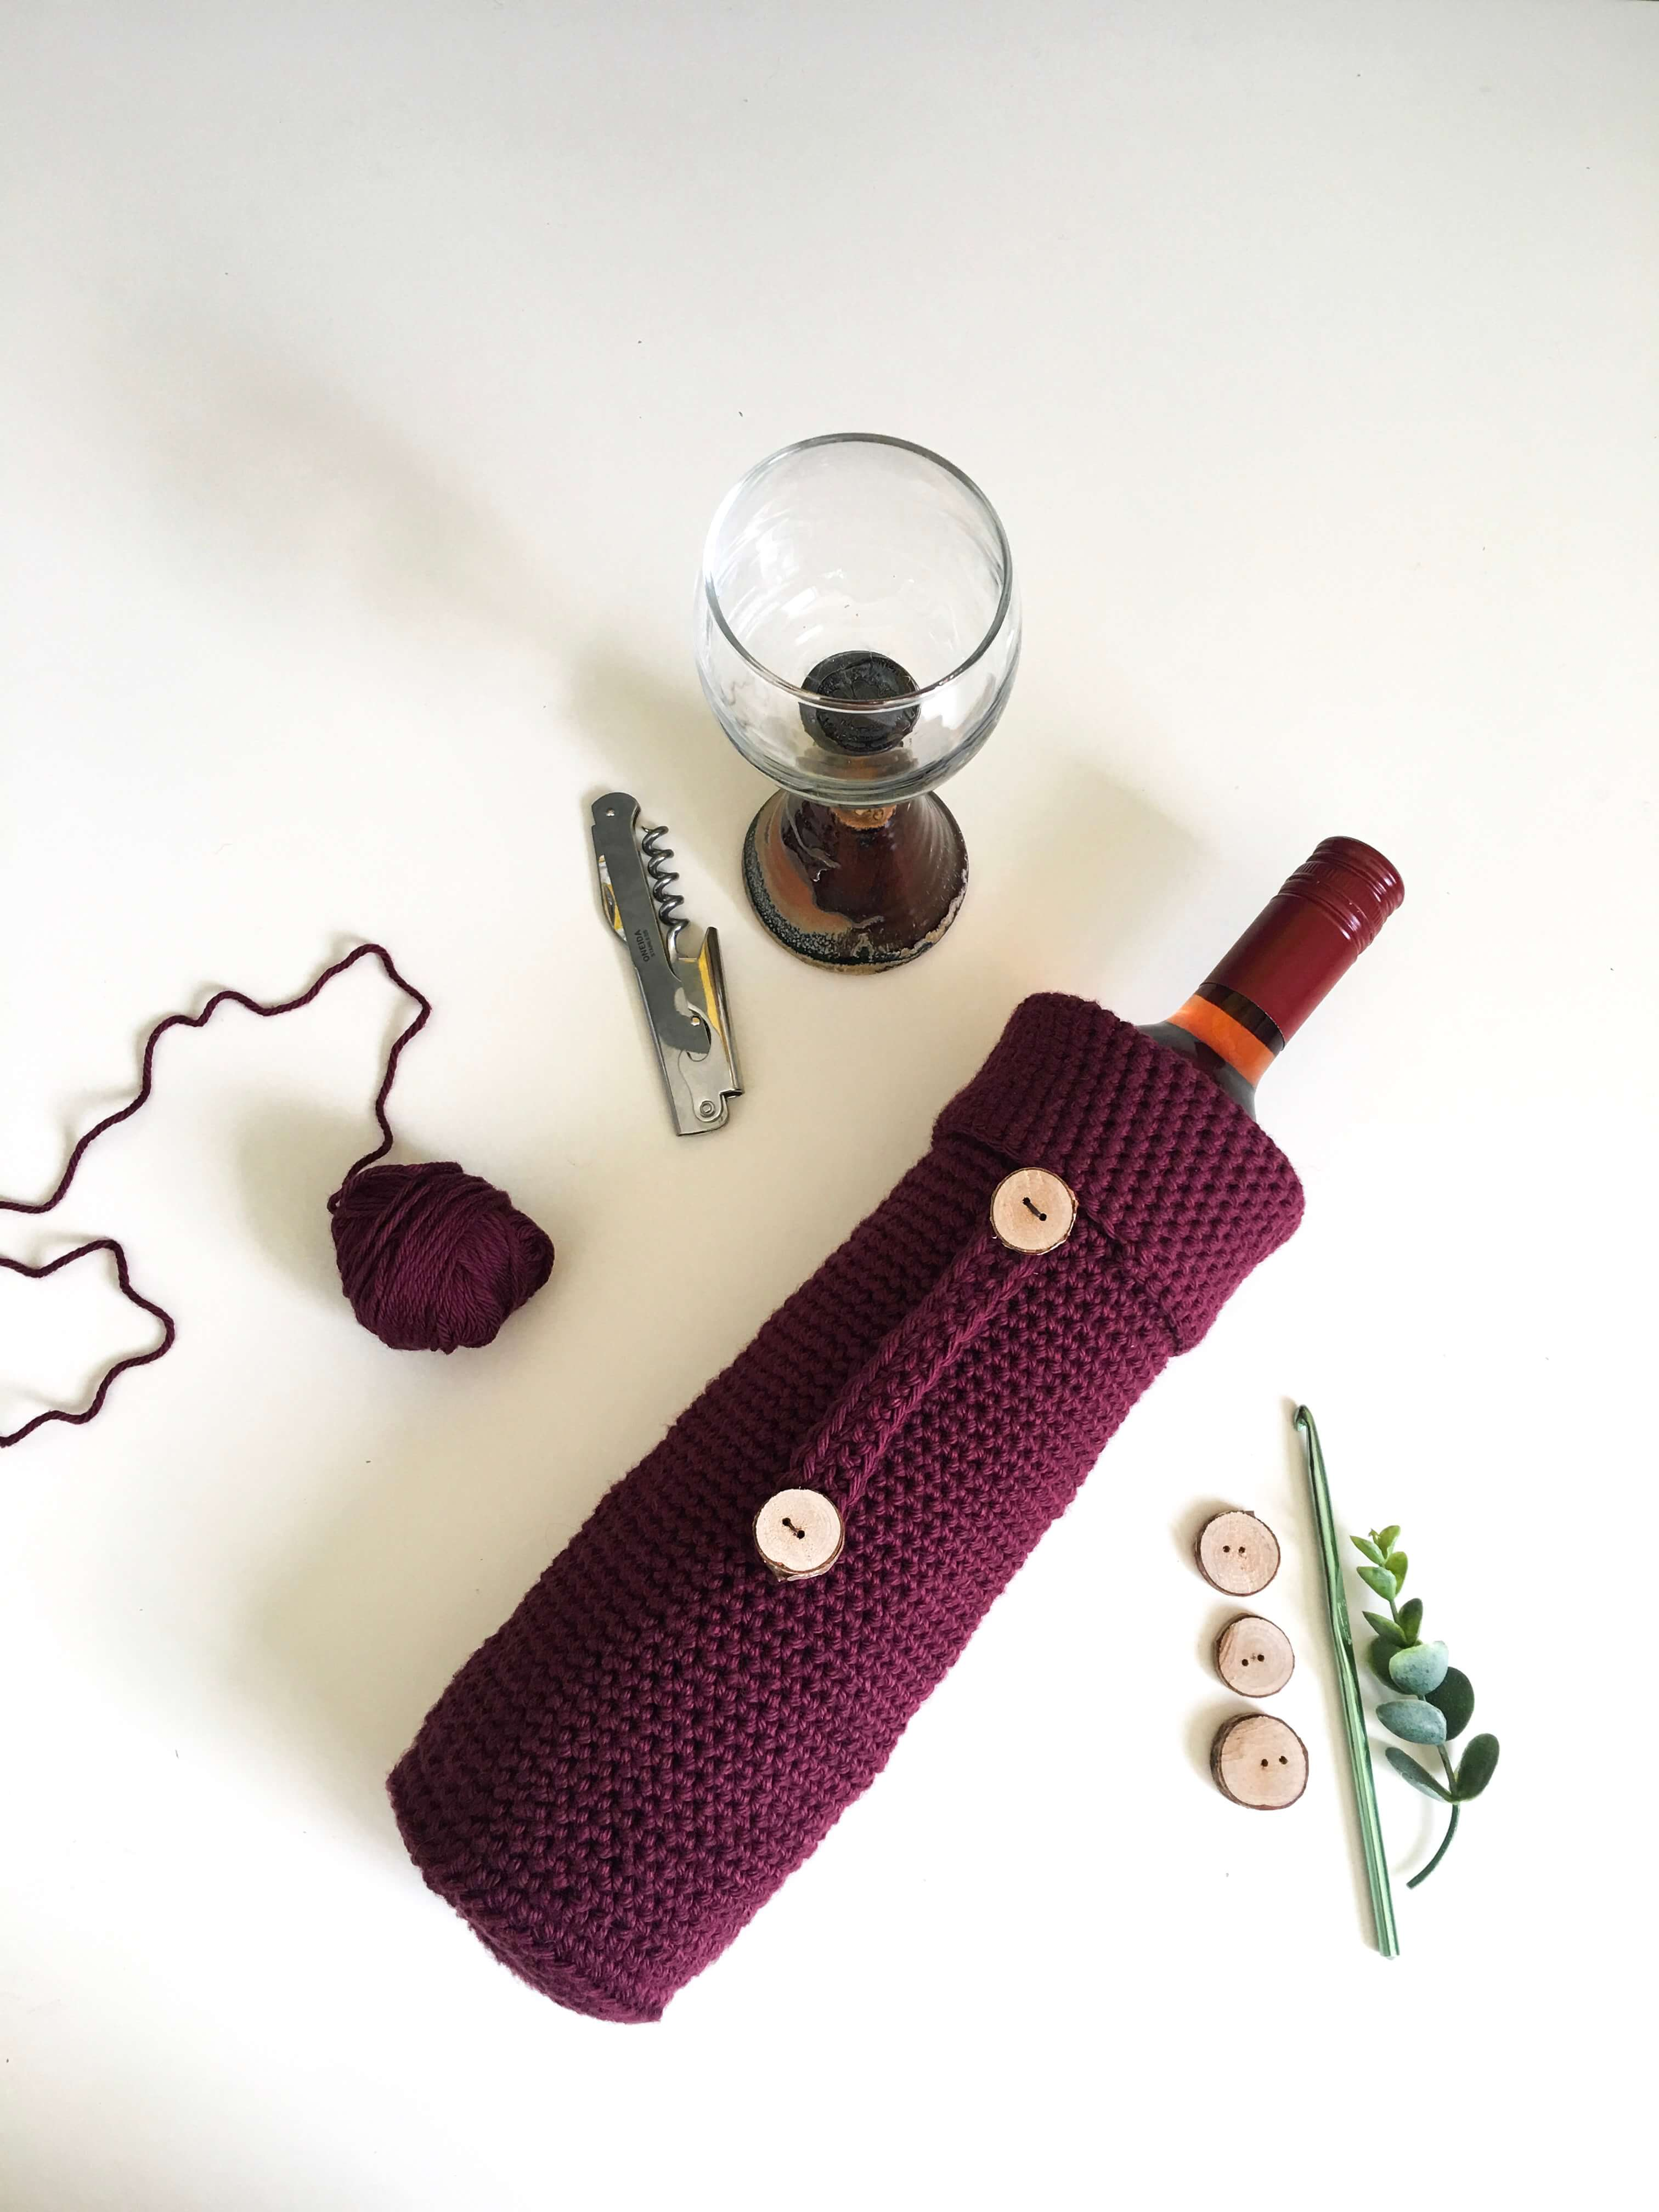 How To Make A Crochet Wine Bottle Cover The Best Hostess